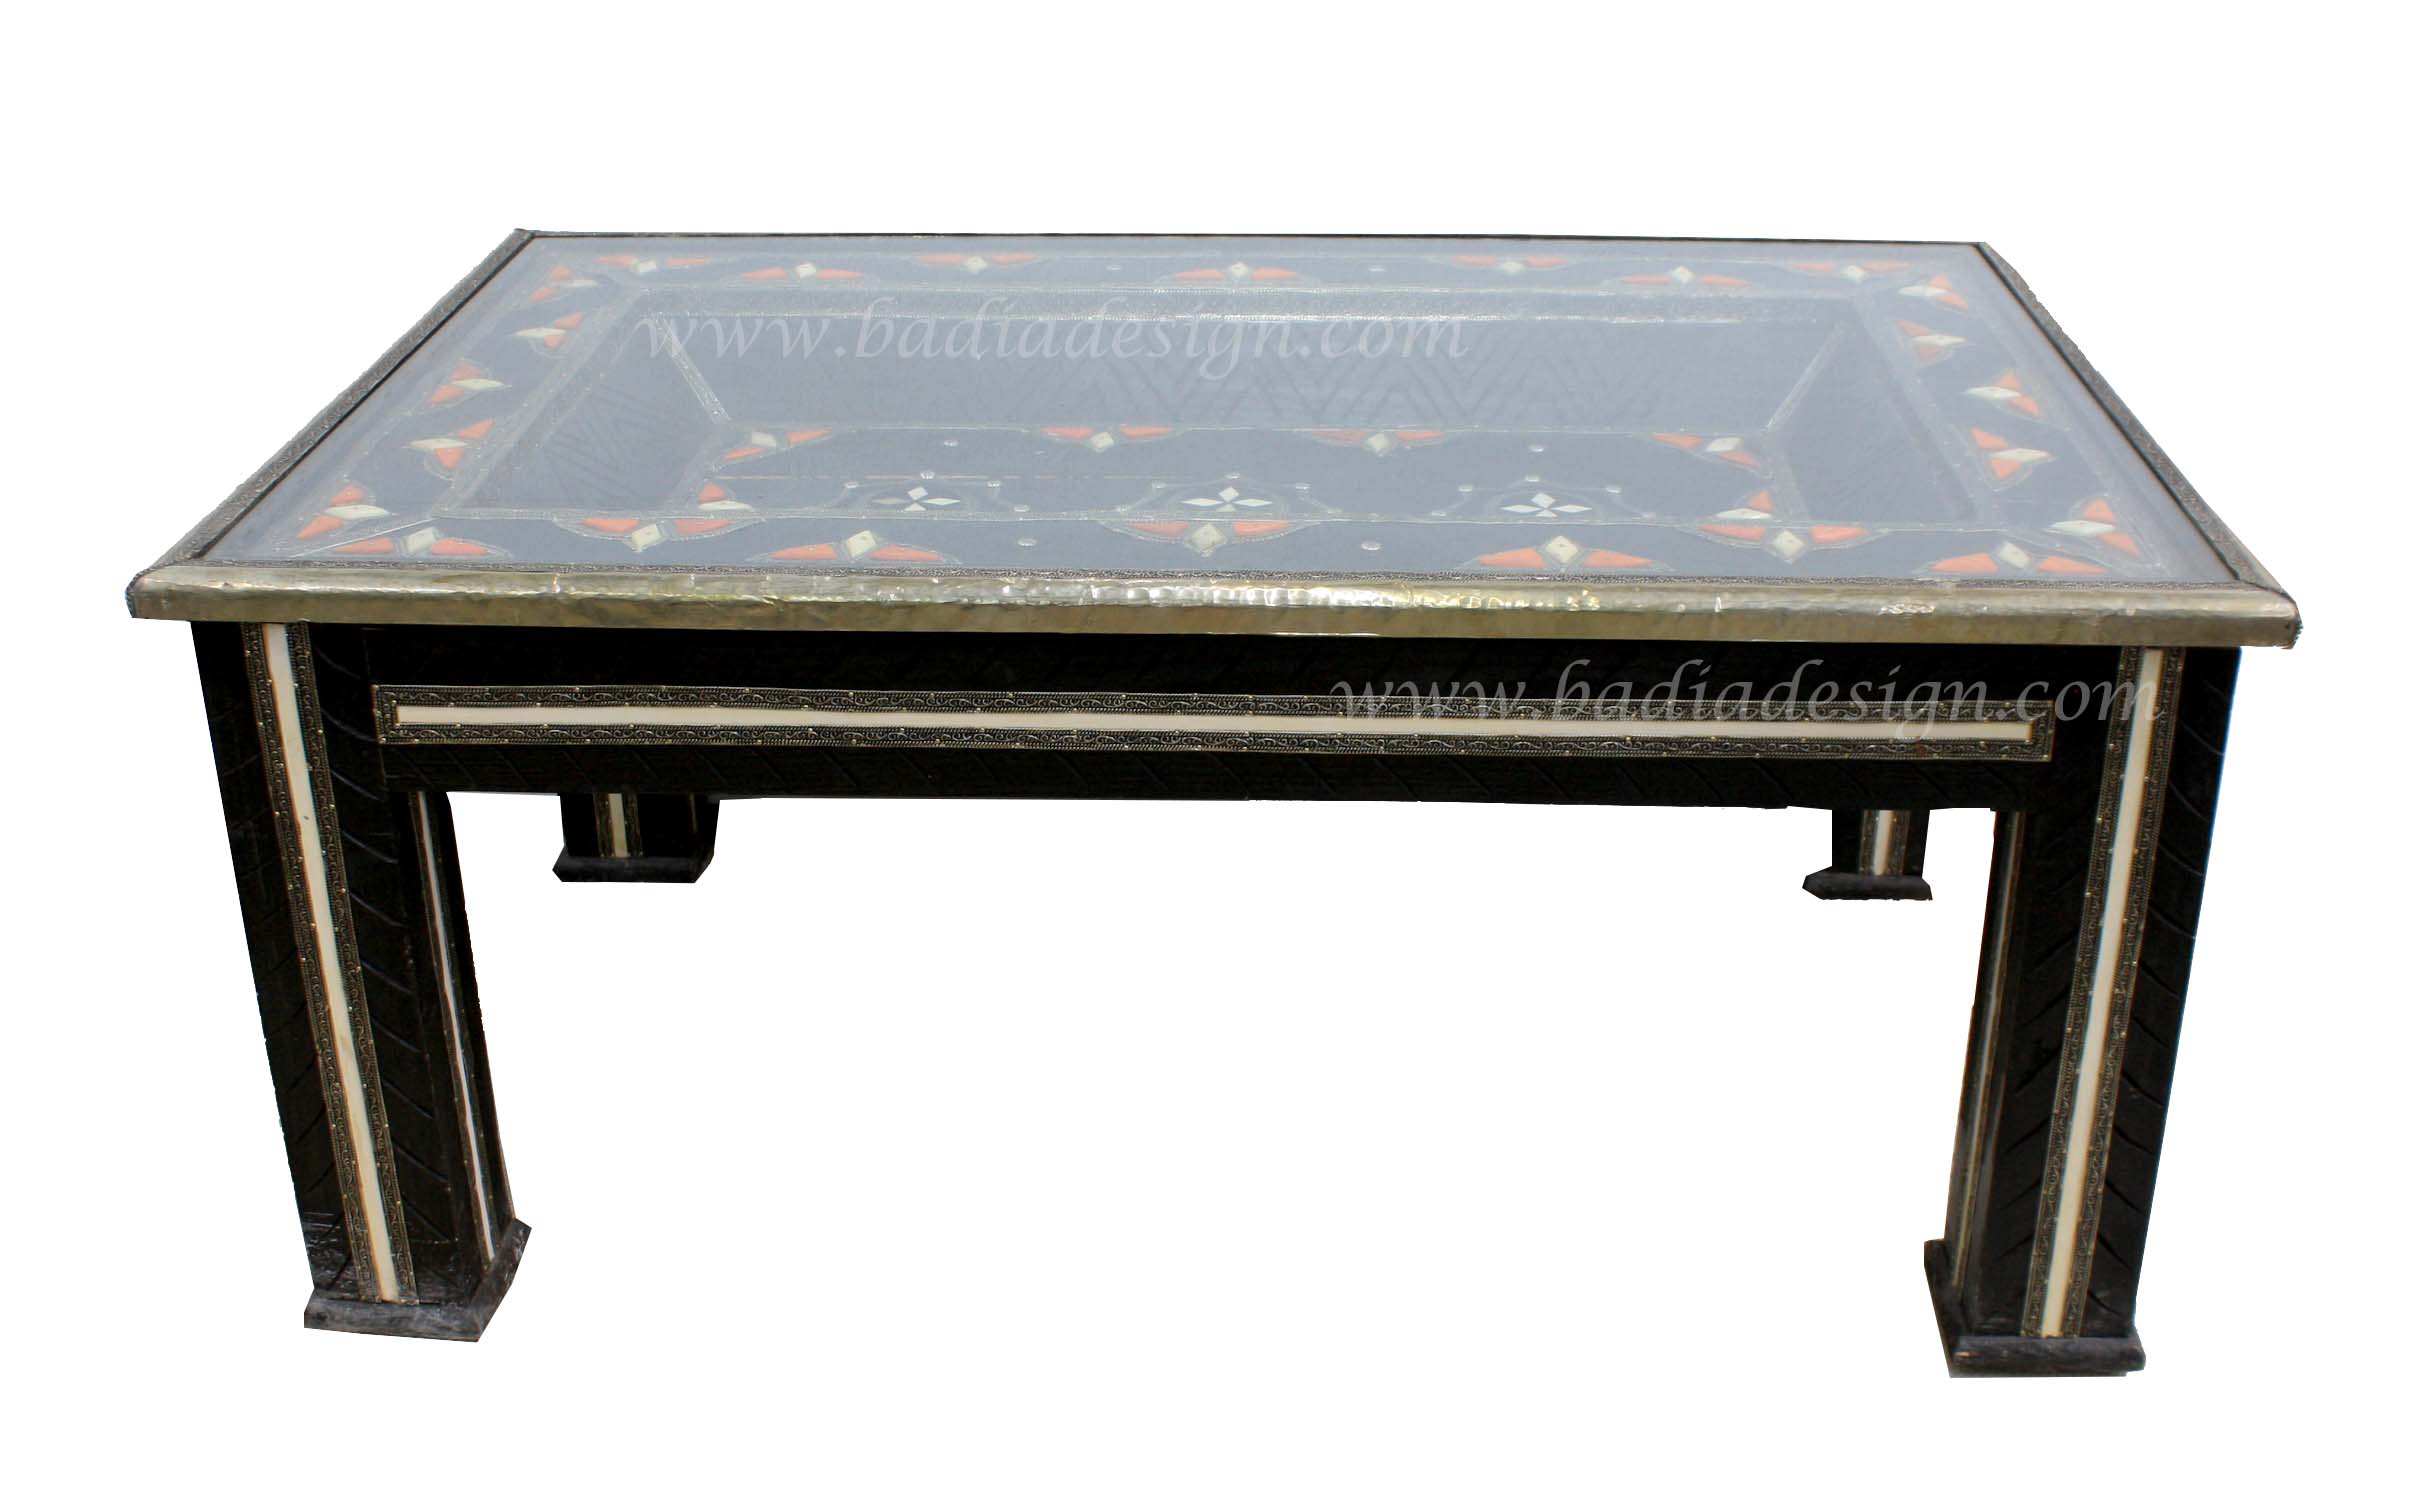 moroccan-metal-and-bone-coffee-table-mb-st062-1.jpg